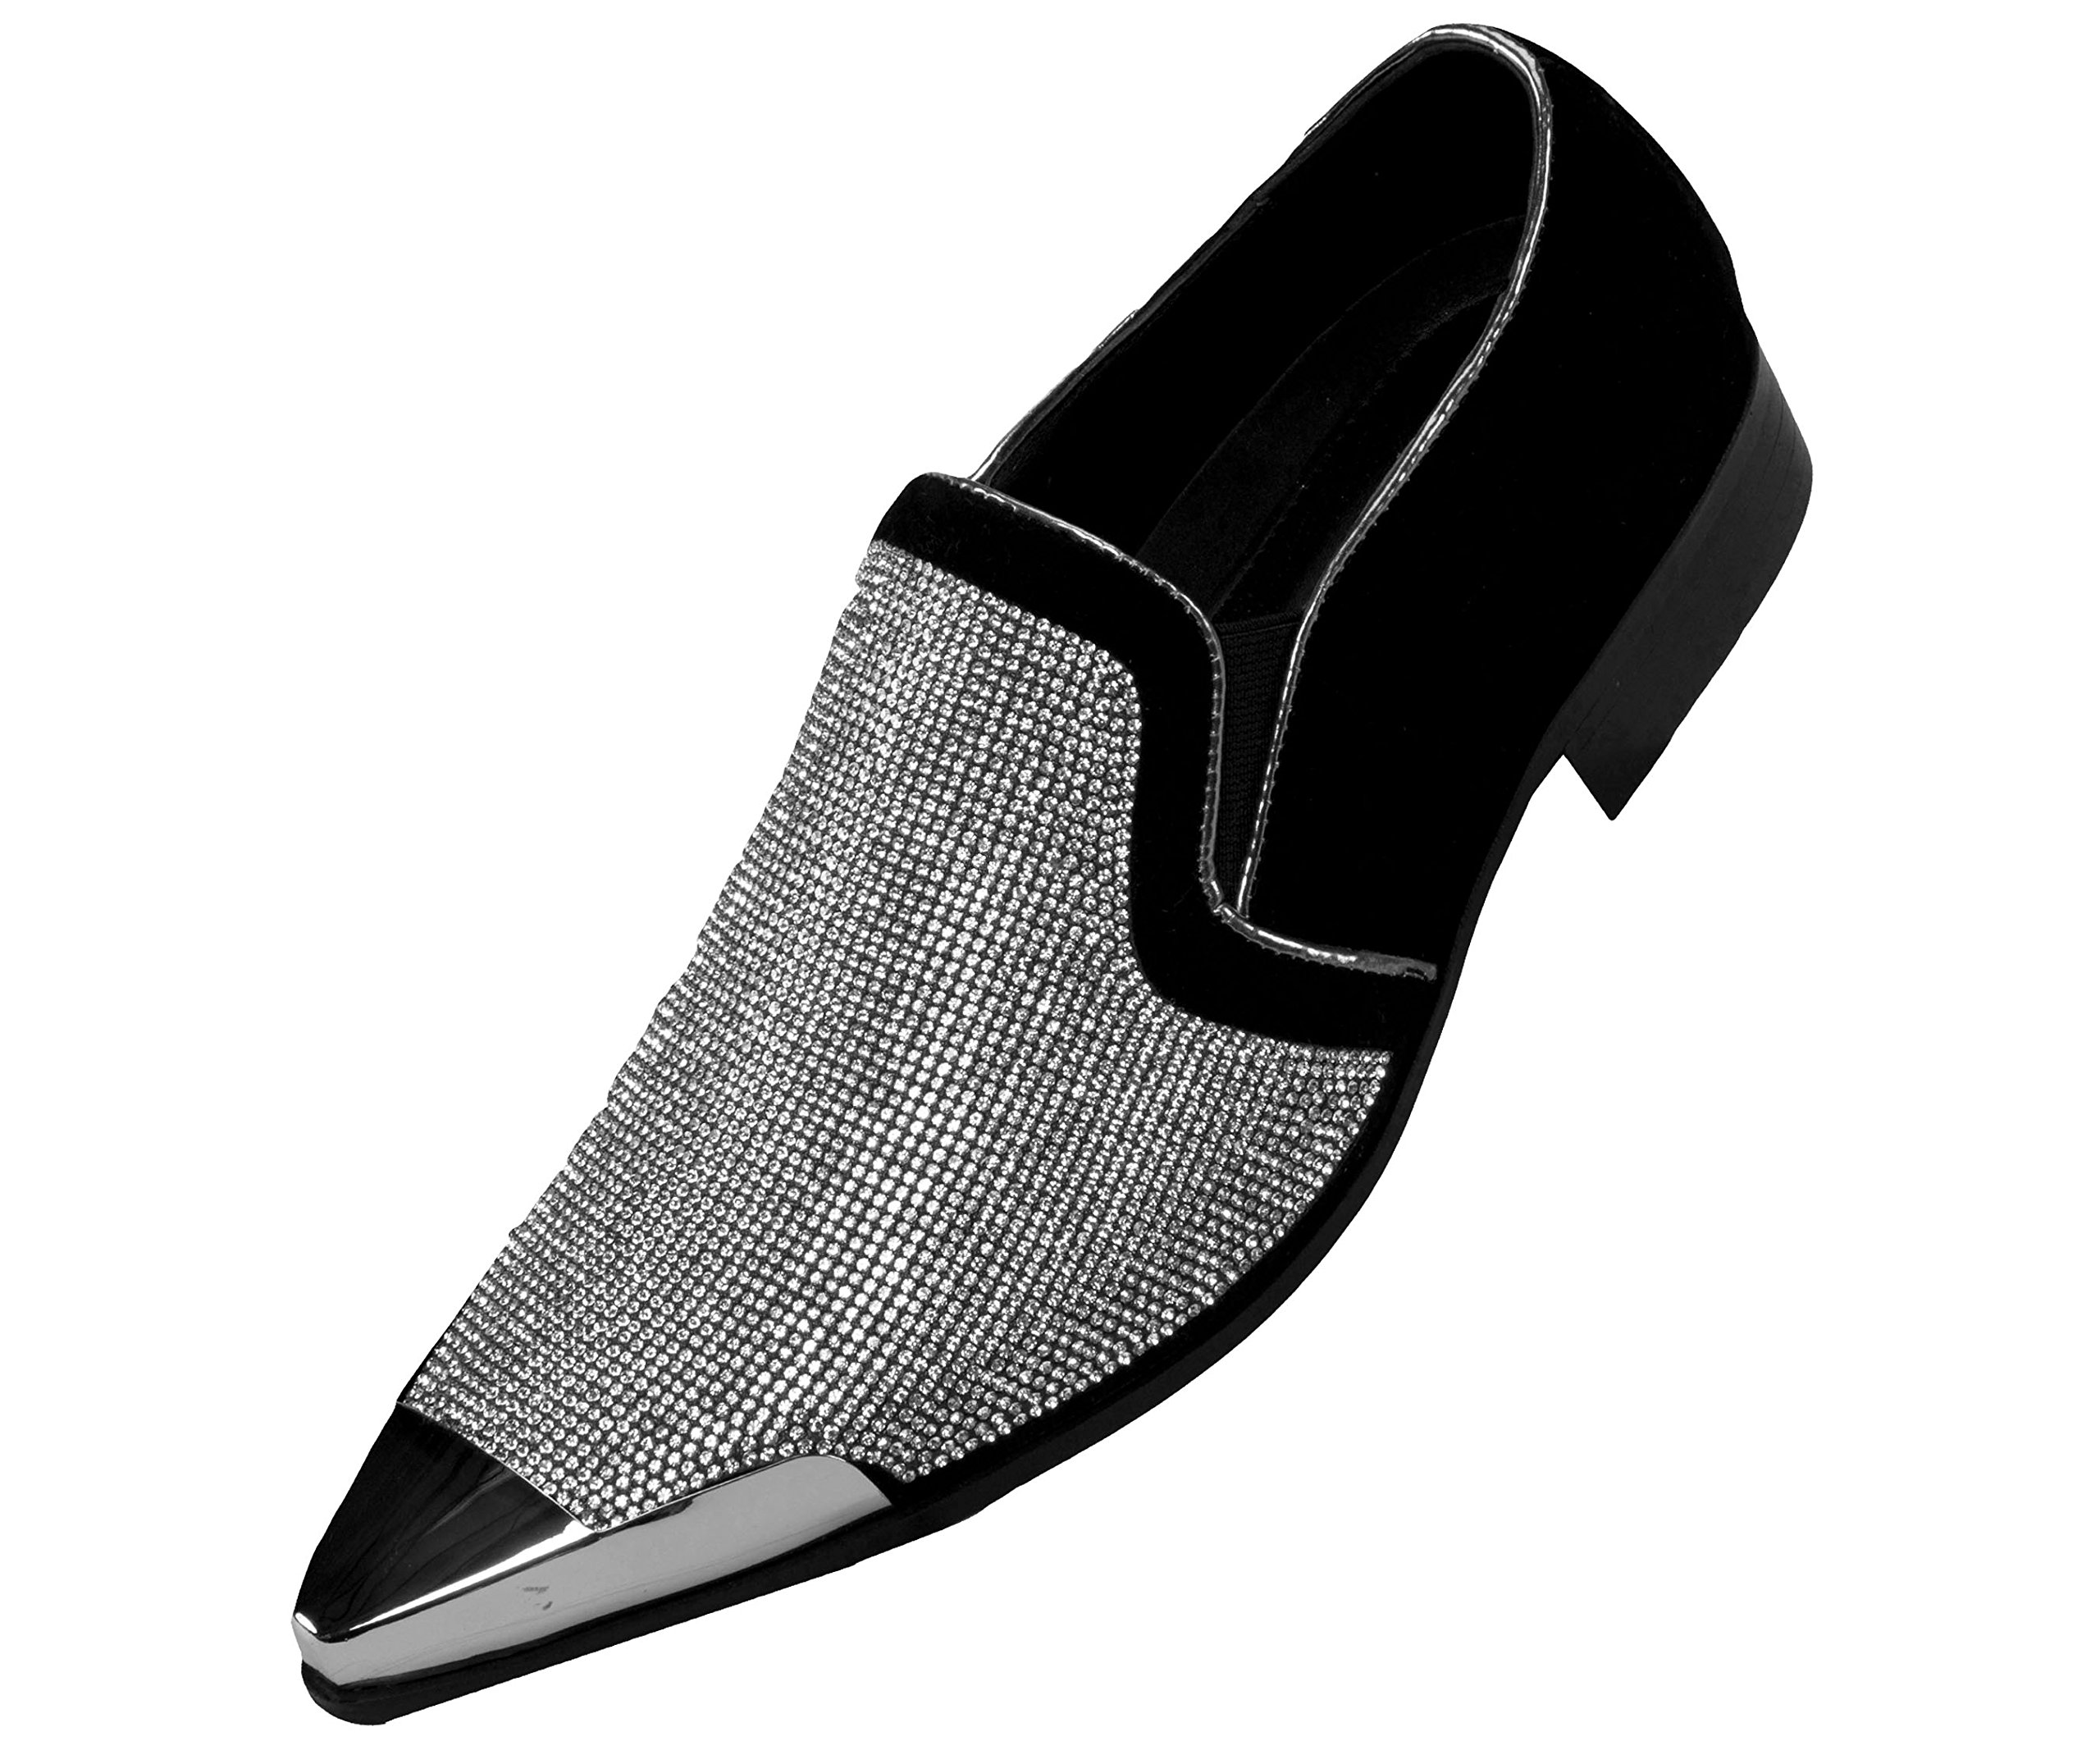 Bolano Mens Rhinestone Embellished and Faux Suede Trim with Metal Tip Dress Shoe, Comfortable Slip-On